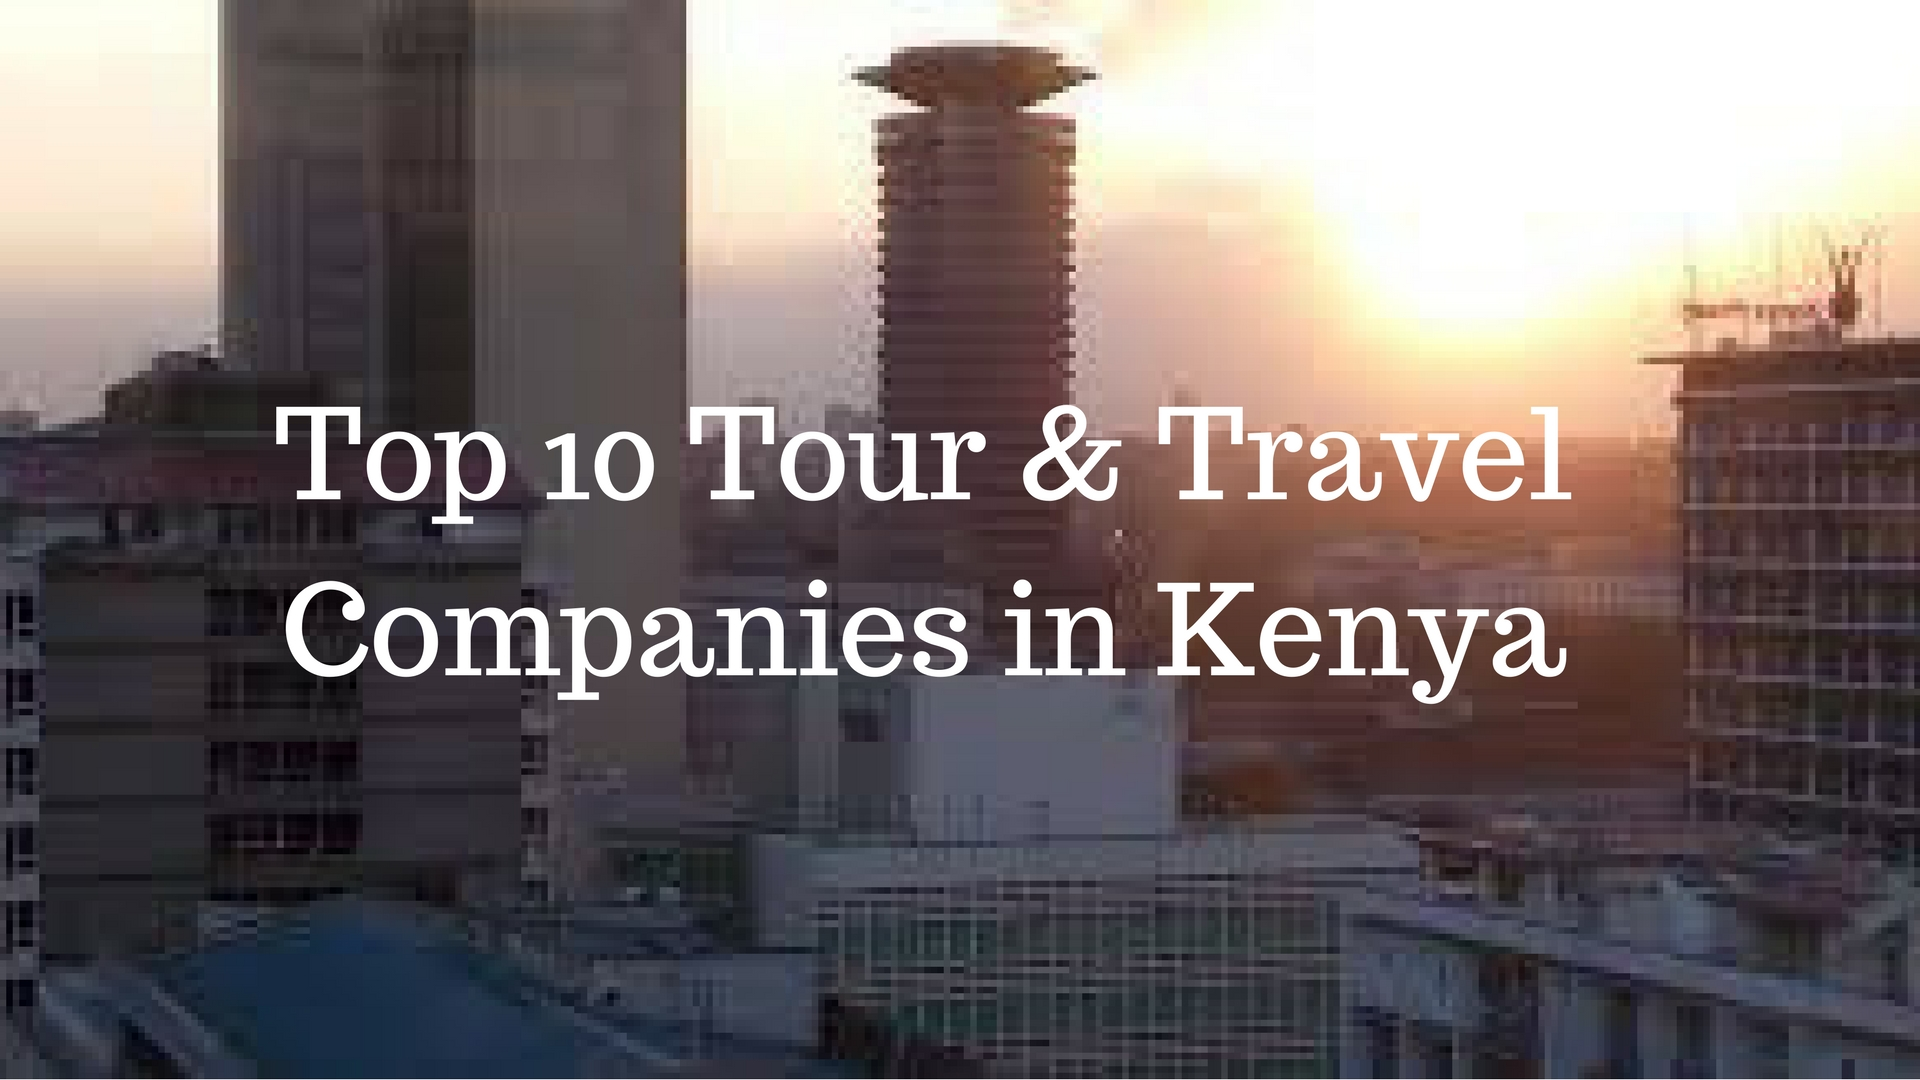 Top 10 Local Tours & Travel Companies in Kenya 2018